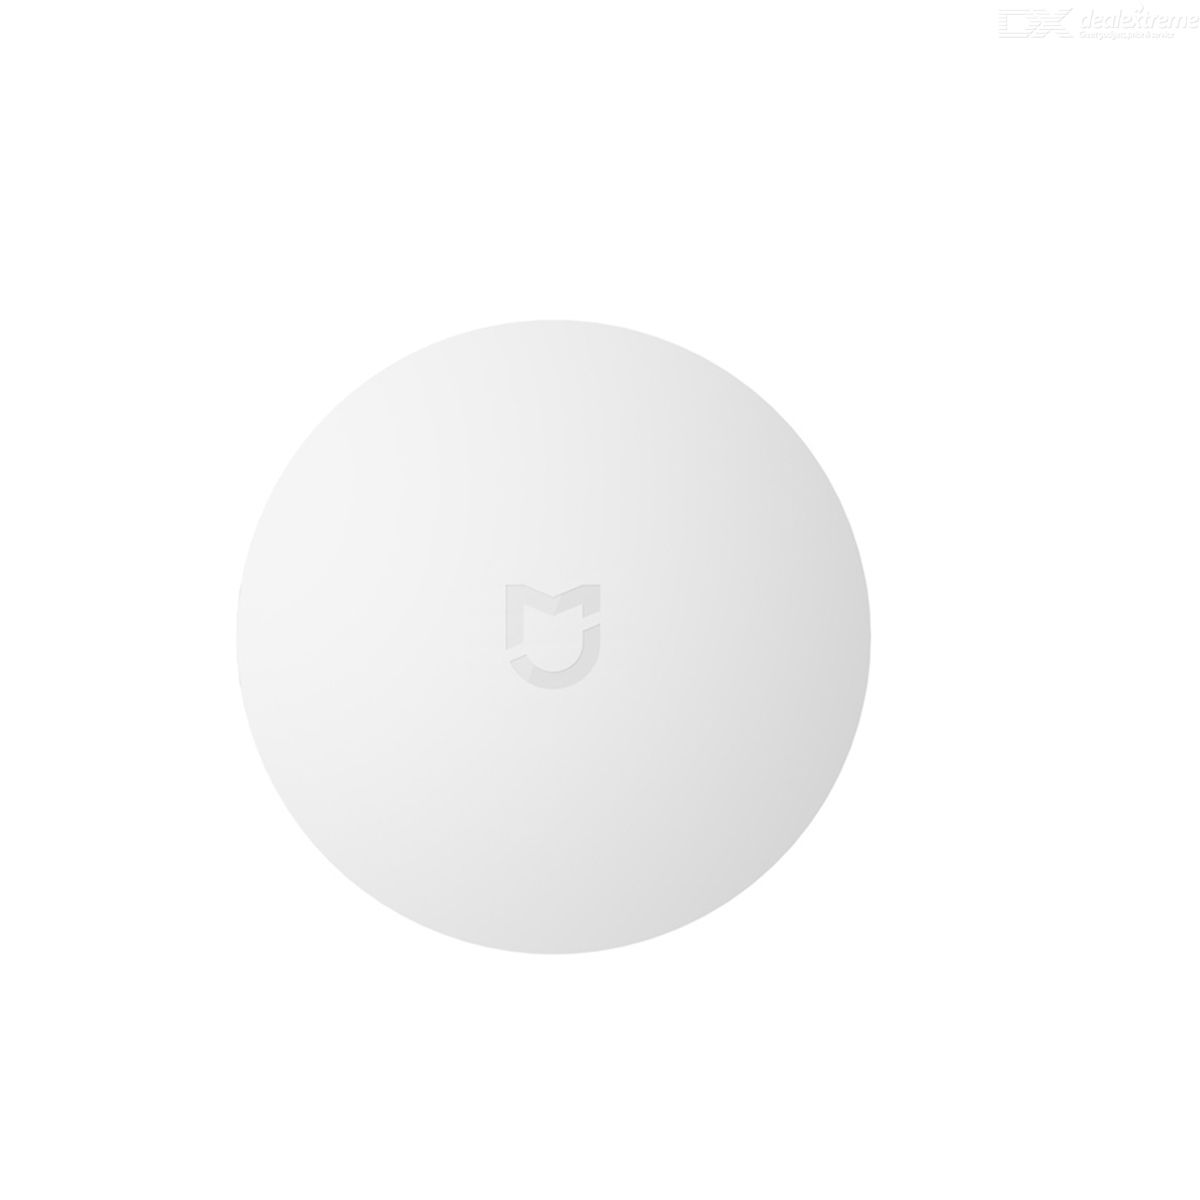 Original Xiaomi WXKG1LM Smart Wireless Switch - White, Multi-Functional Intelligent Switch for Home Device